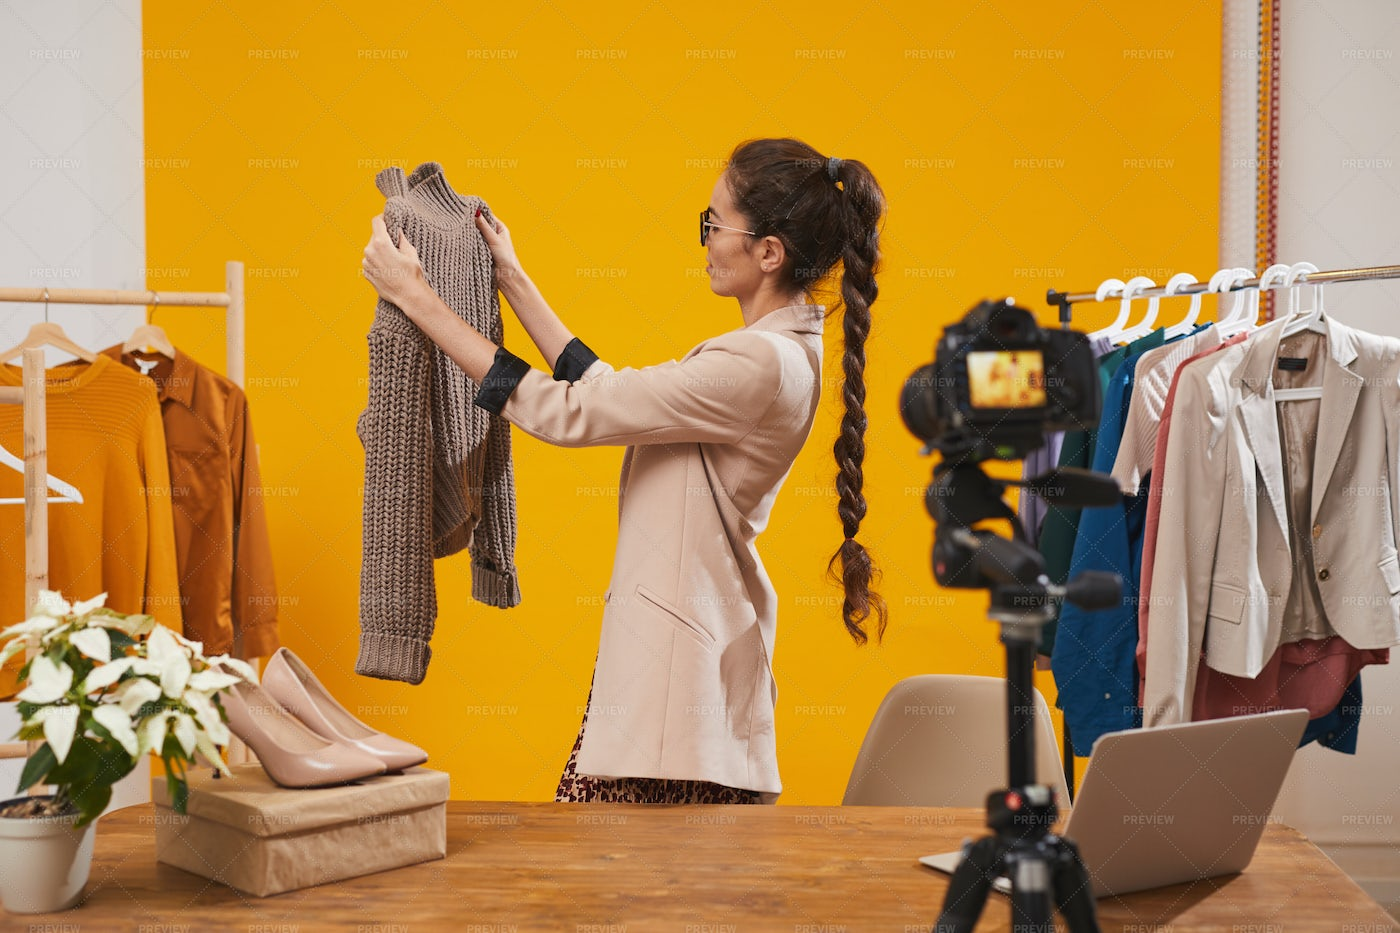 Fashion Blogger Filming Video In...: Stock Photos